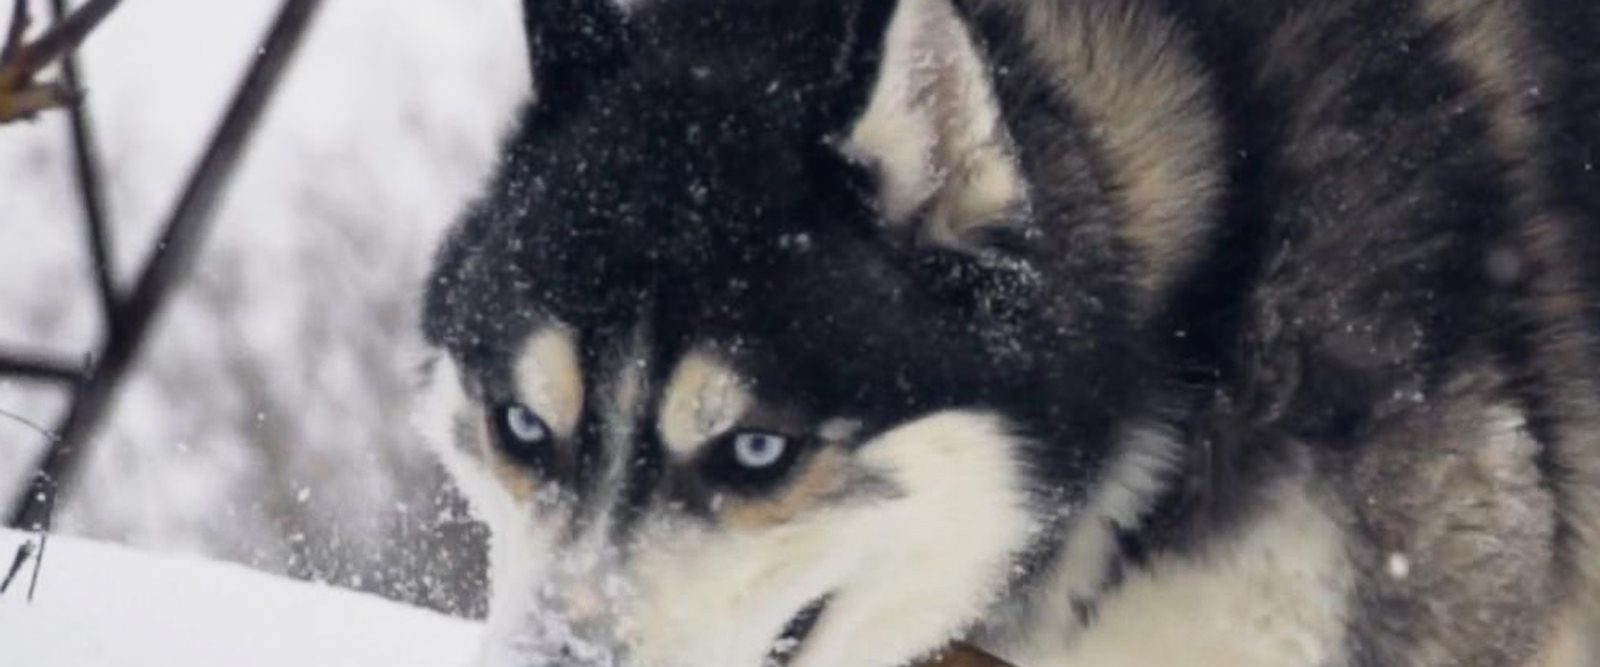 VIDEO: Dog sledding, another sport facing doping scandals, abuse allegations